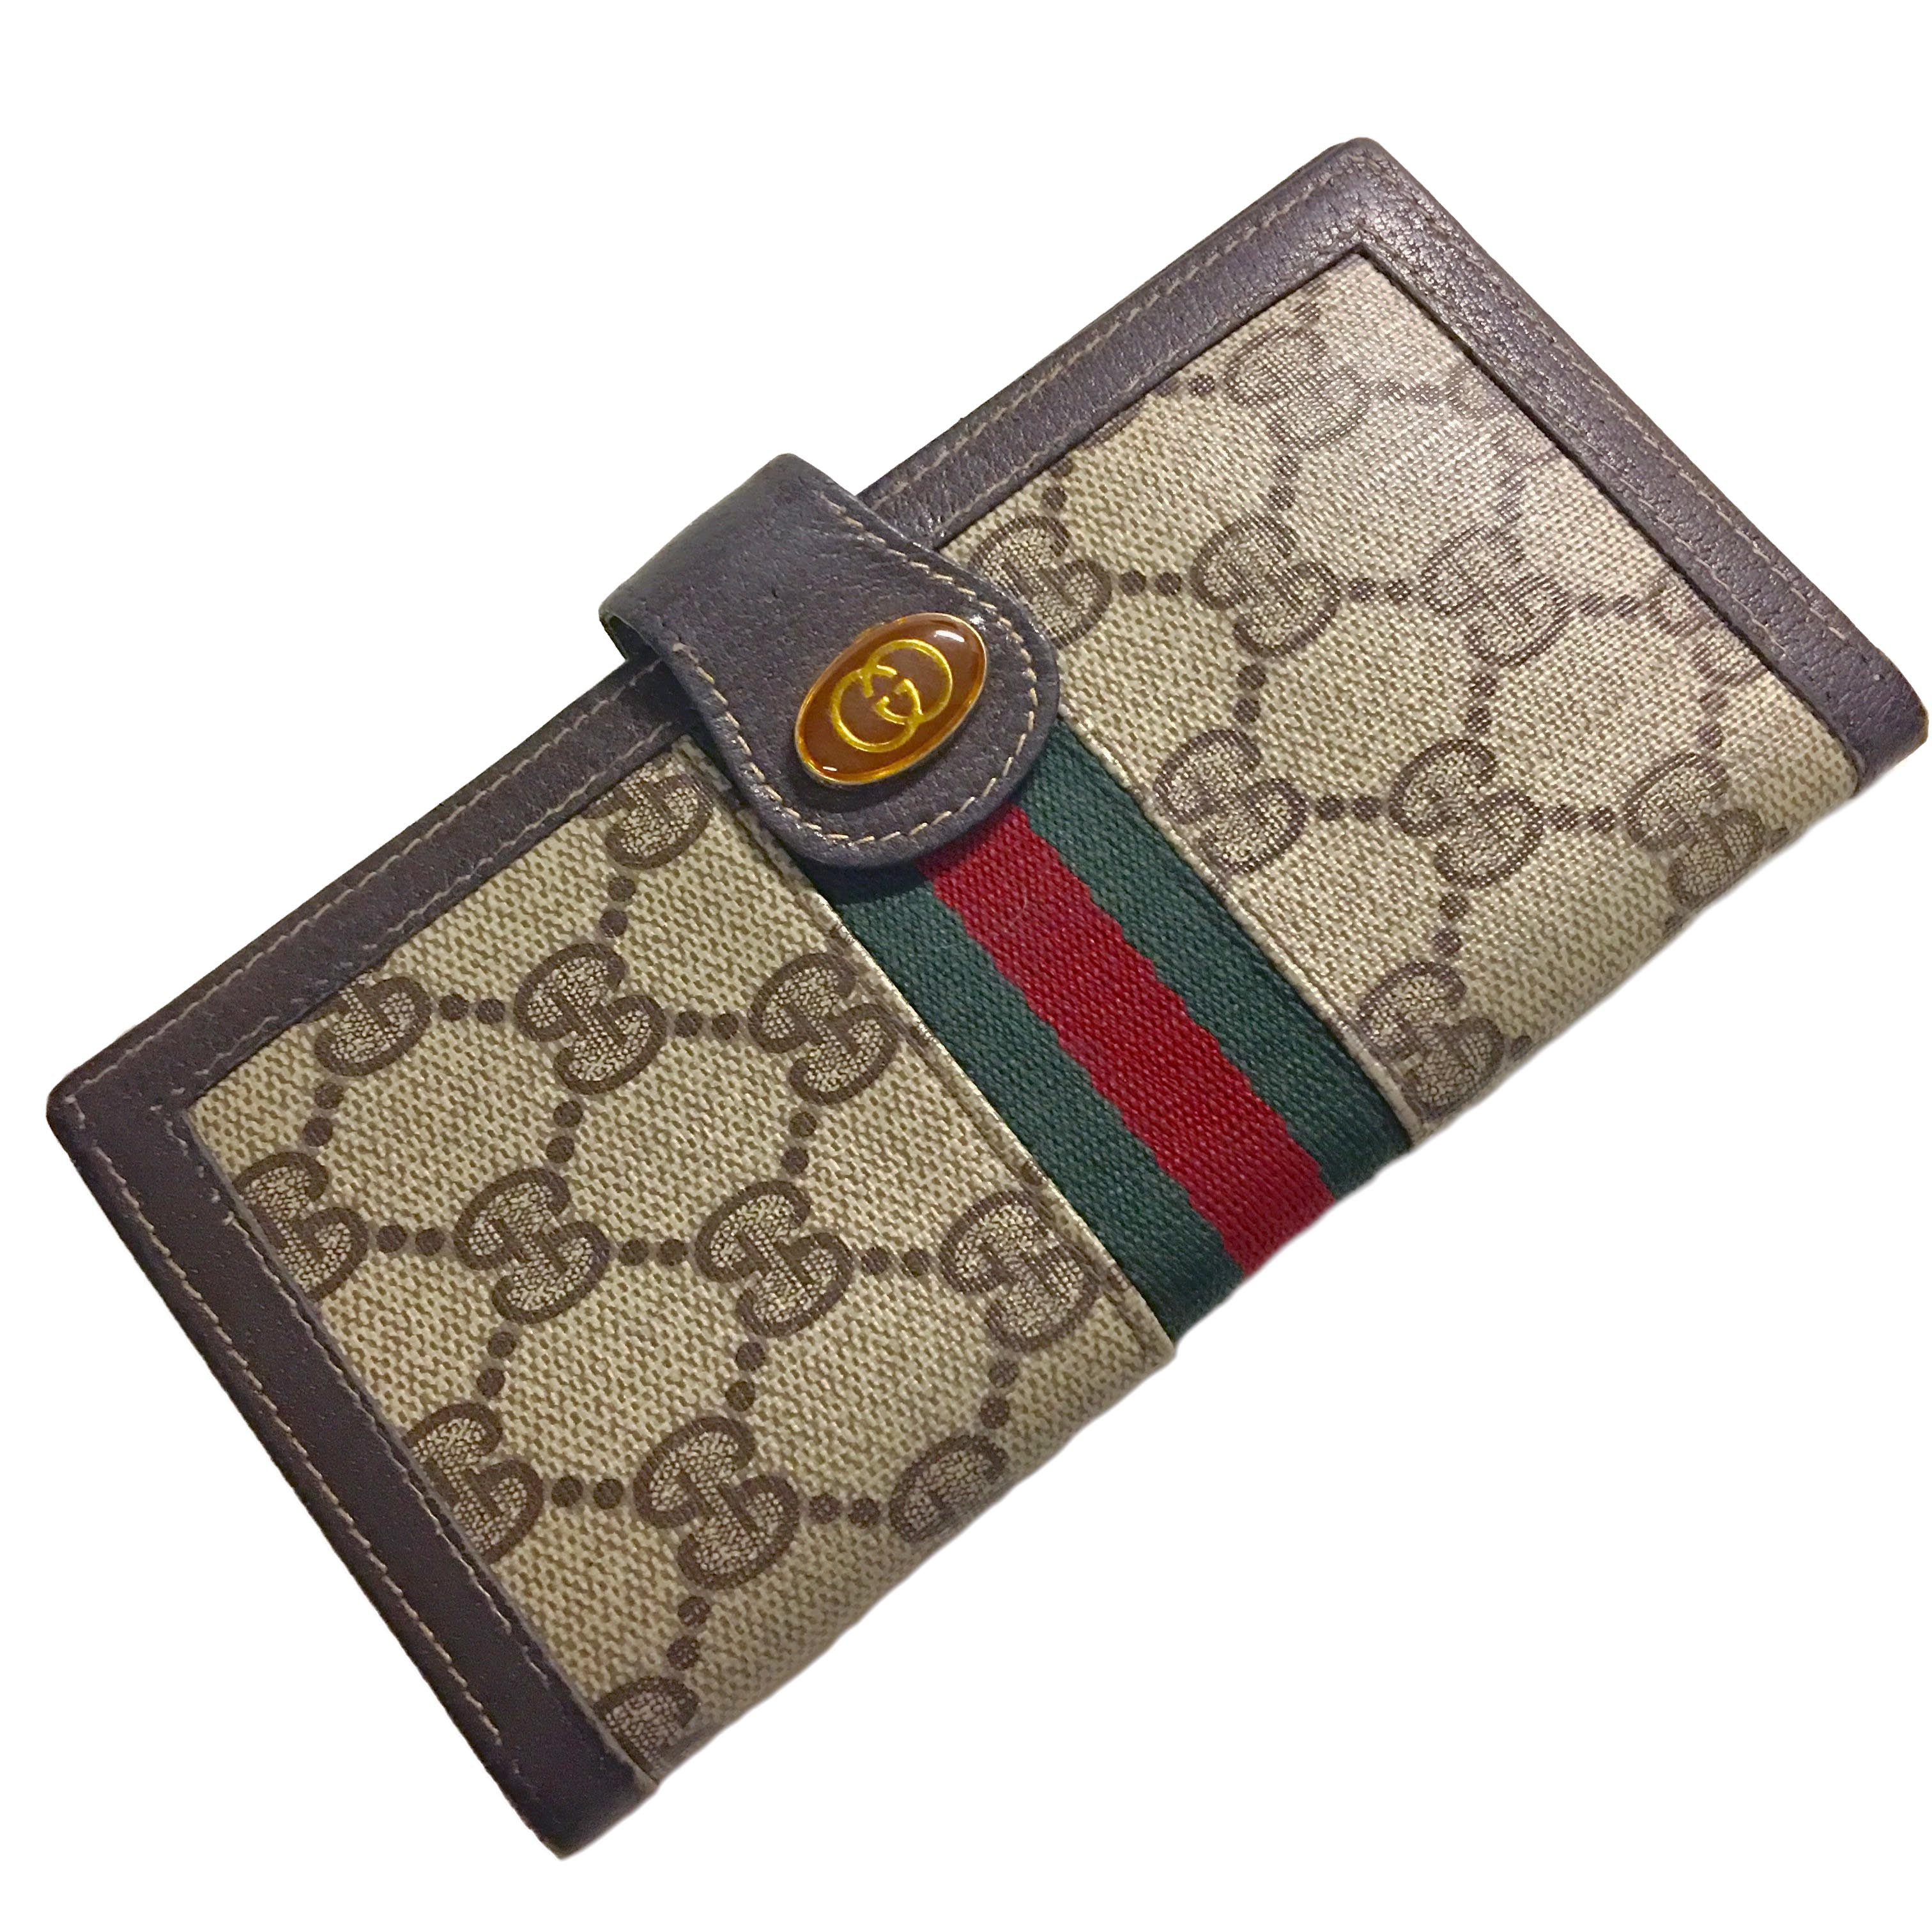 12c976e937d9 GUCCI 1970s Accessory Collection Vintage Checkbook Cover Wallet ...